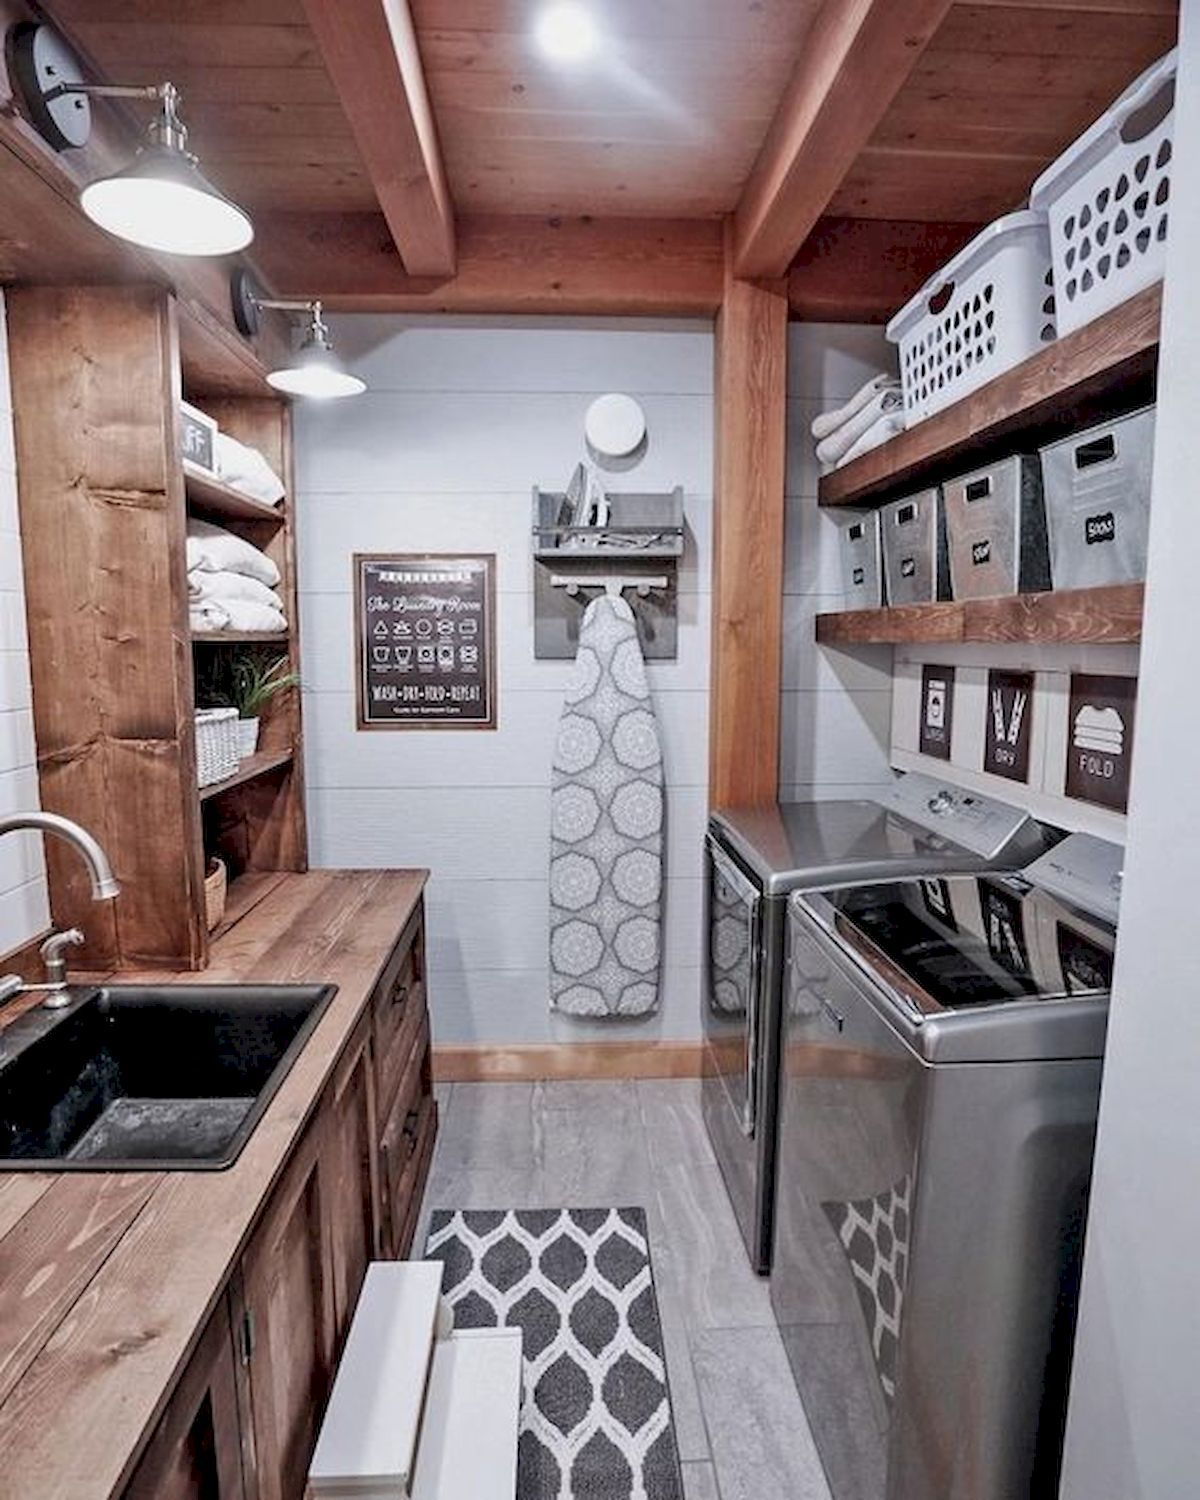 55 Gorgeous Laundry Room Design Ideas and Decorations images